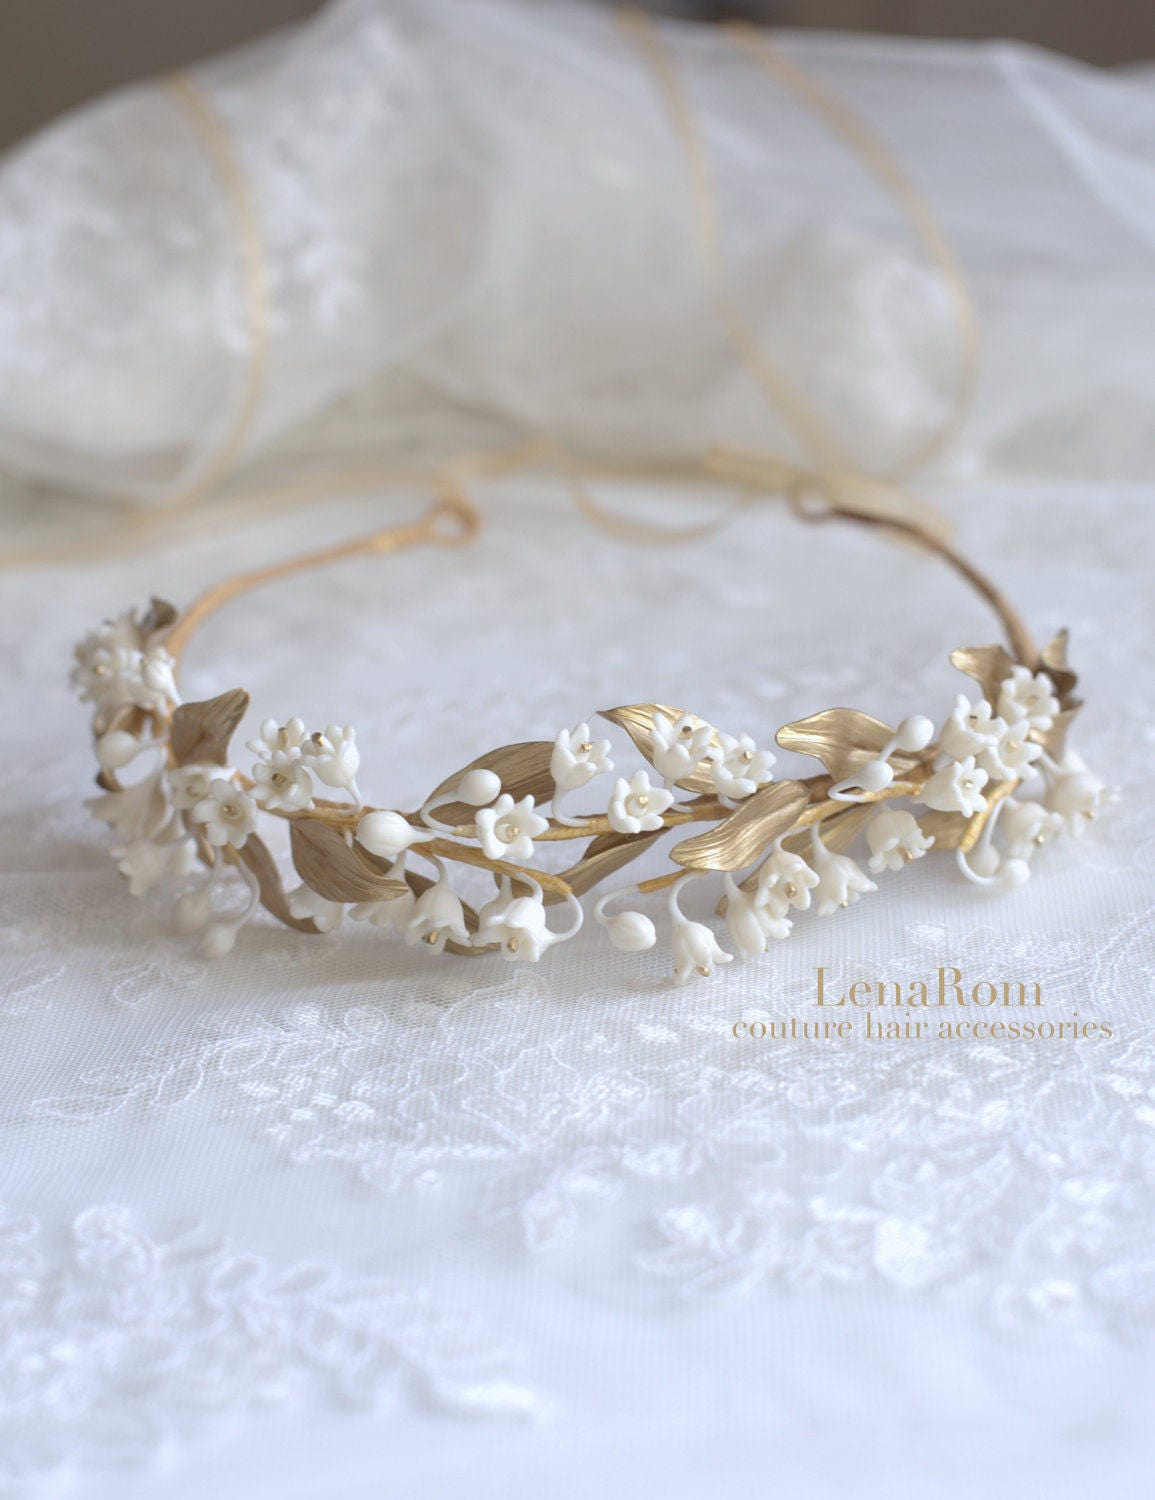 Hair accessories catalog request - Request A Custom Order And Have Something Made Just For You